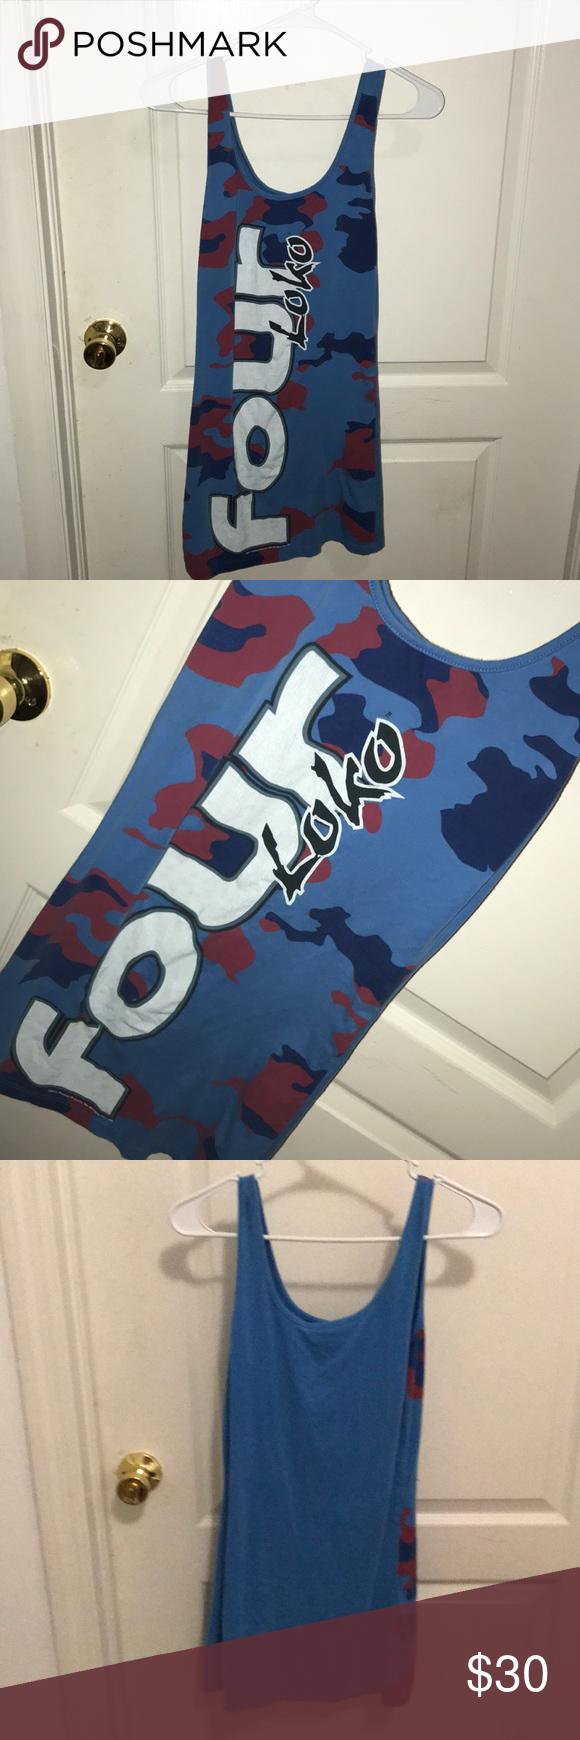 Four loko dress This one of kind four loko dress will make you the talk of any event! I wore it once for Halloween but you could also wear it to raves concerts & themed parties! Everyone LOVES it! Lol Dresses Mini